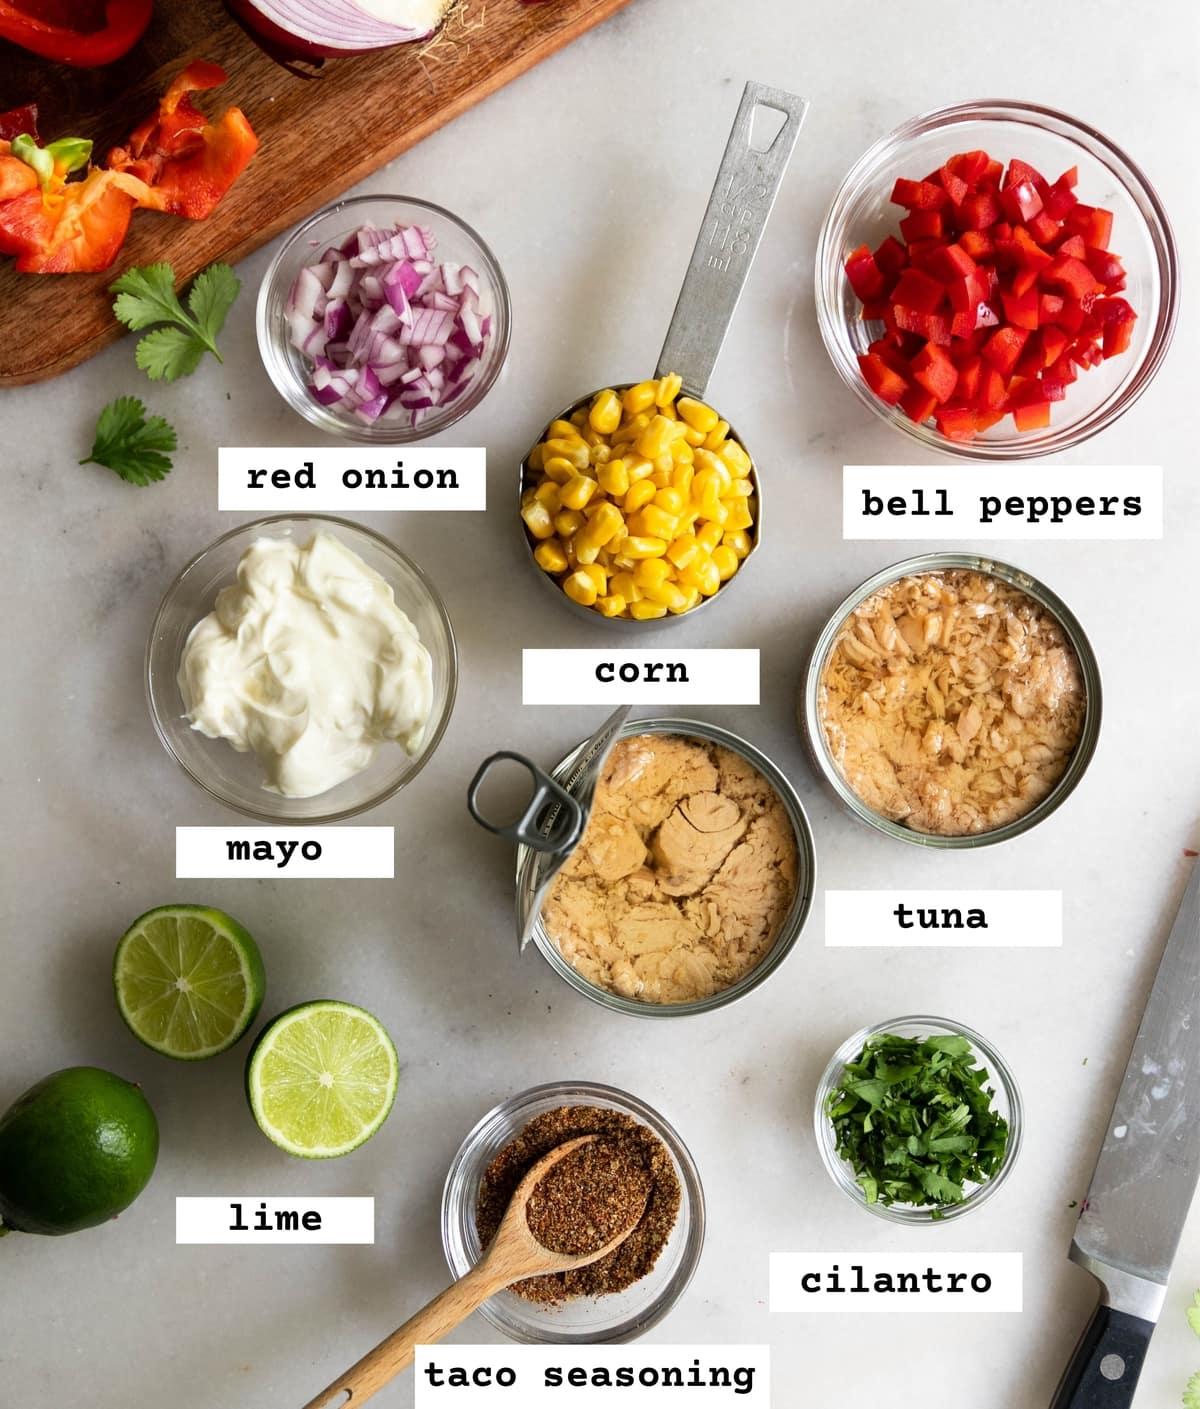 All the ingredients laid out on a marble board in individual containers and labeled: red onion, corn, bell peppers, mayo, tuna, lime, taco seasoning, and cilantro.